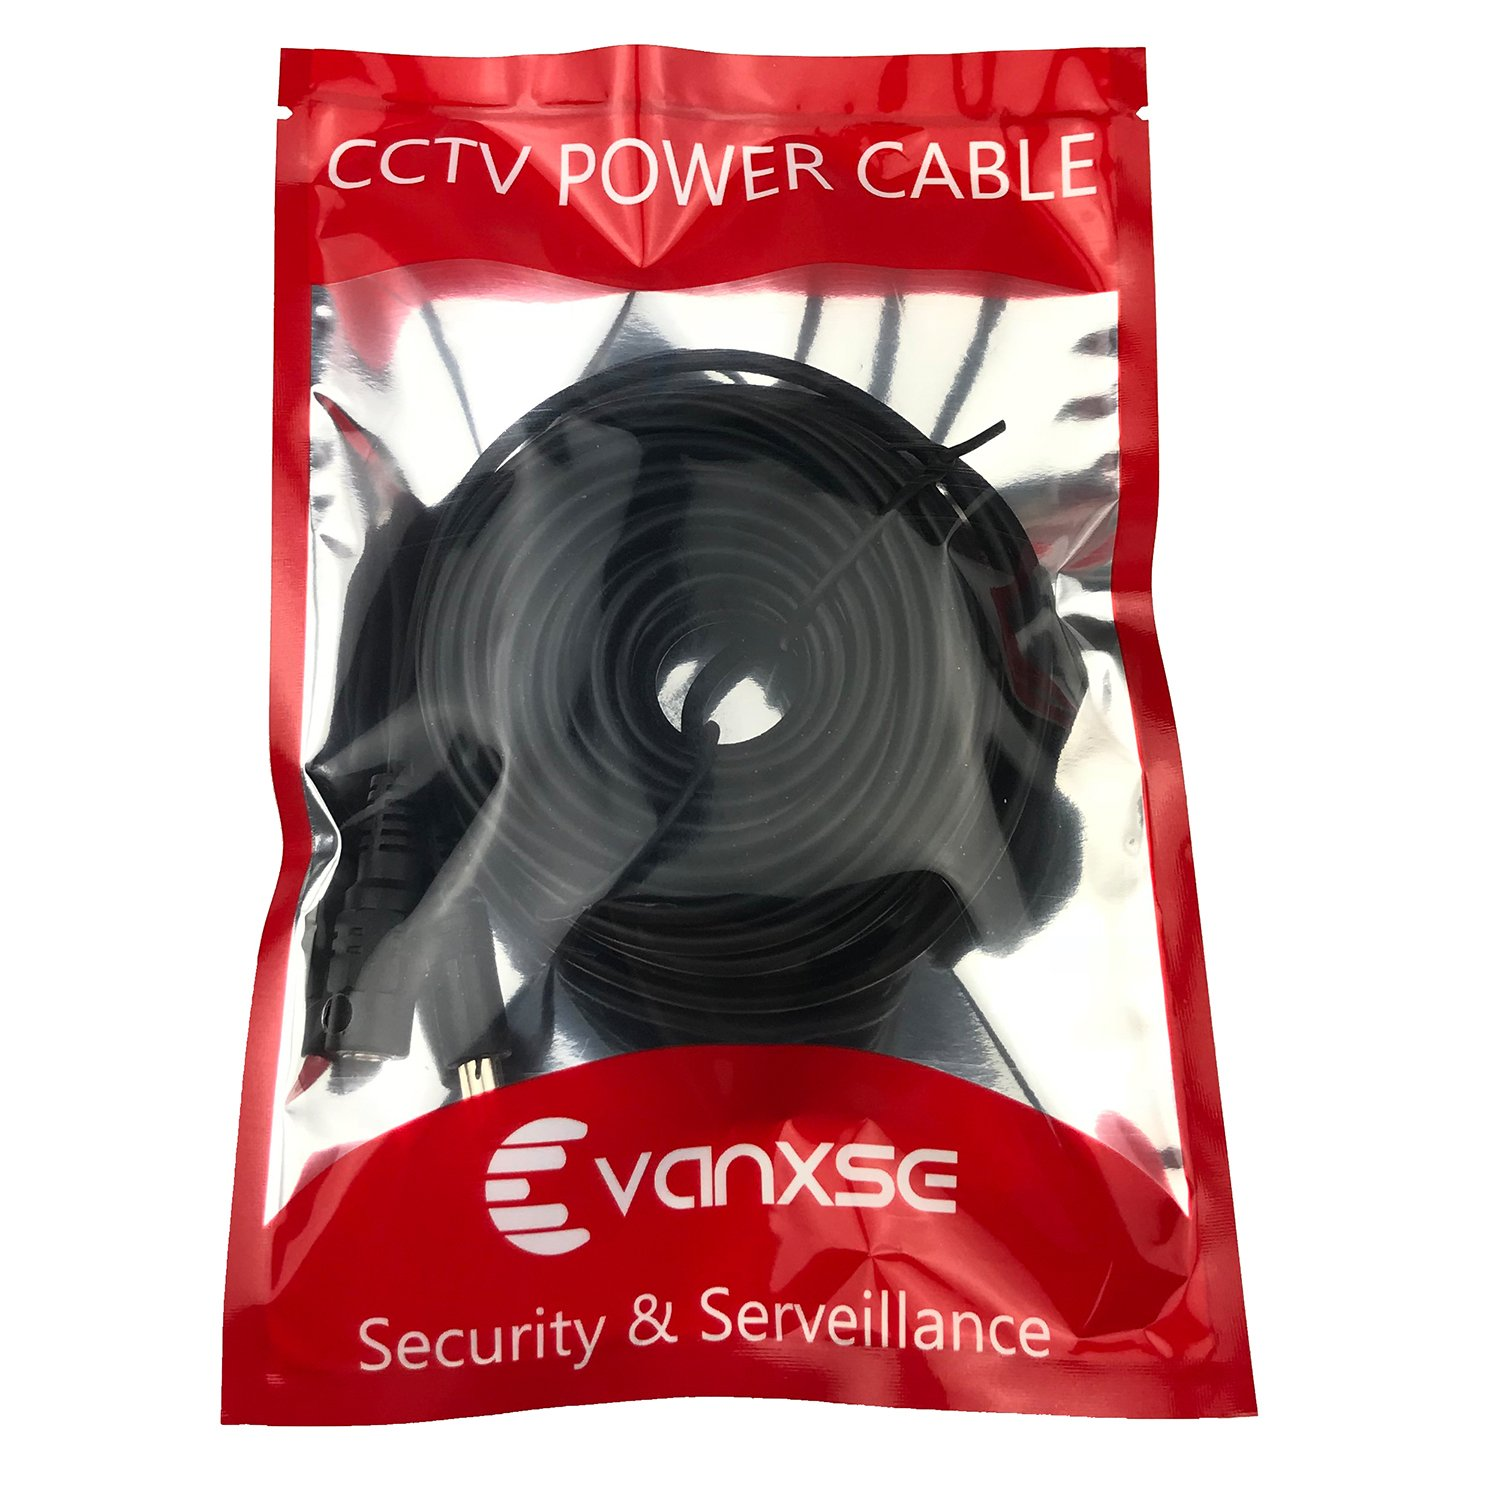 CCTV 15m 2.1x5.5mm Dc 12v Power Extension Cable